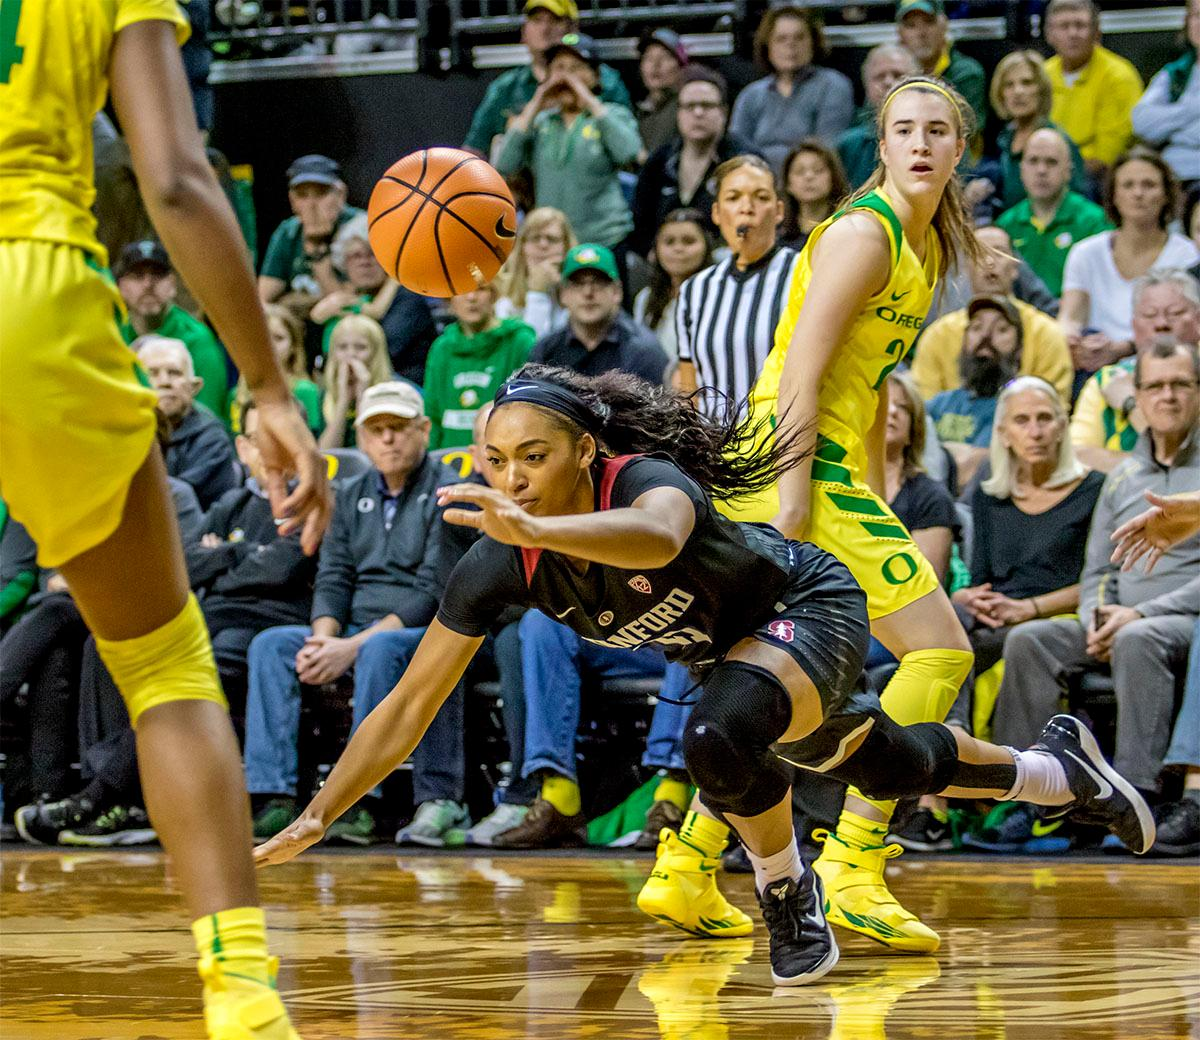 A Stanford players takes a tumble losing the ball. The Stanford Cardinal defeated the Oregon Ducks 78-65 on Sunday afternoon at Matthew Knight Arena. Stanford is now 10-2 in conference play and with this loss the Ducks drop to 10-2. Leading the Stanford Cardinal was Brittany McPhee with 33 points, Alanna Smith with 14 points, and Kiana Williams with 14 points. For the Ducks Sabrina Ionescu led with 22 points, Ruthy Hebard added 16 points, and Satou Sabally put in 14 points. Photo by August Frank, Oregon News Lab